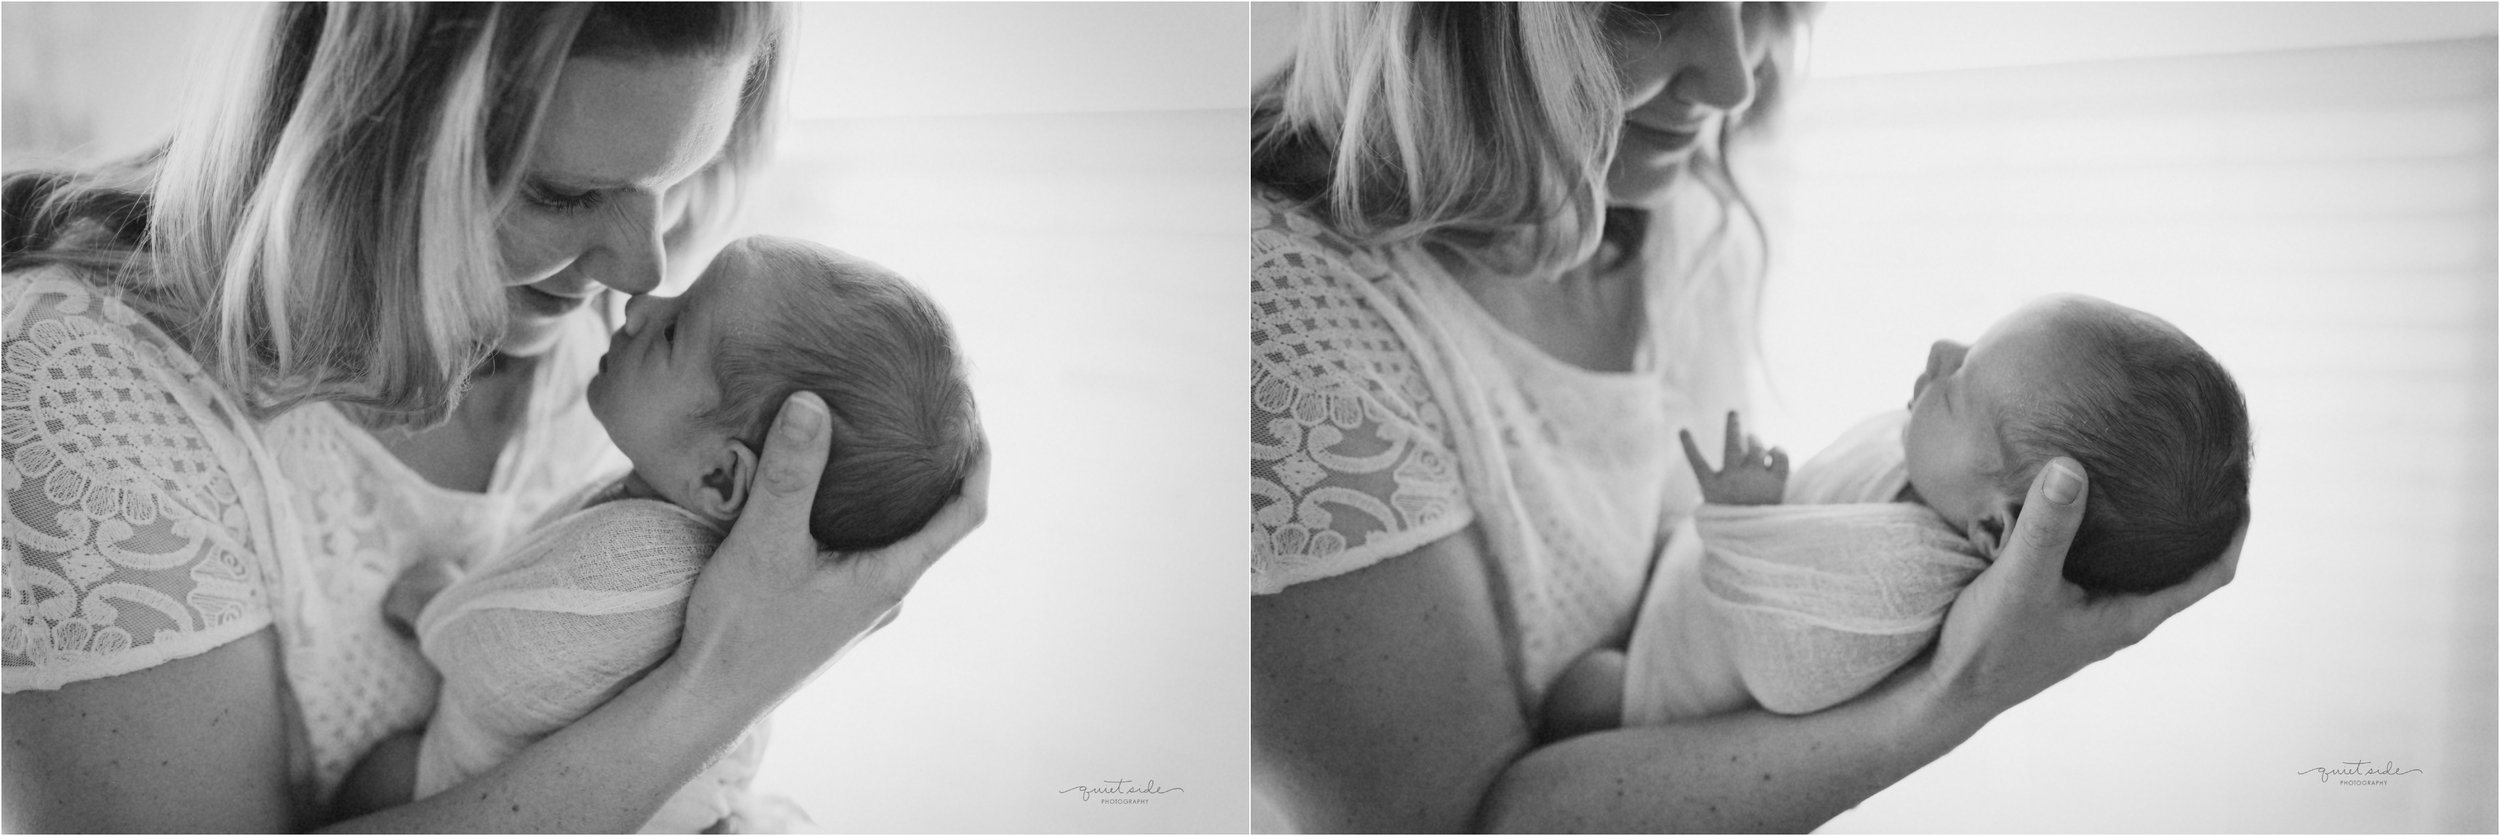 quietsidephotography-newbornphotographer-Purcellville, VA- Gittingsnewbornsession-motherhood-simplenewborn-momandbaby.jpg